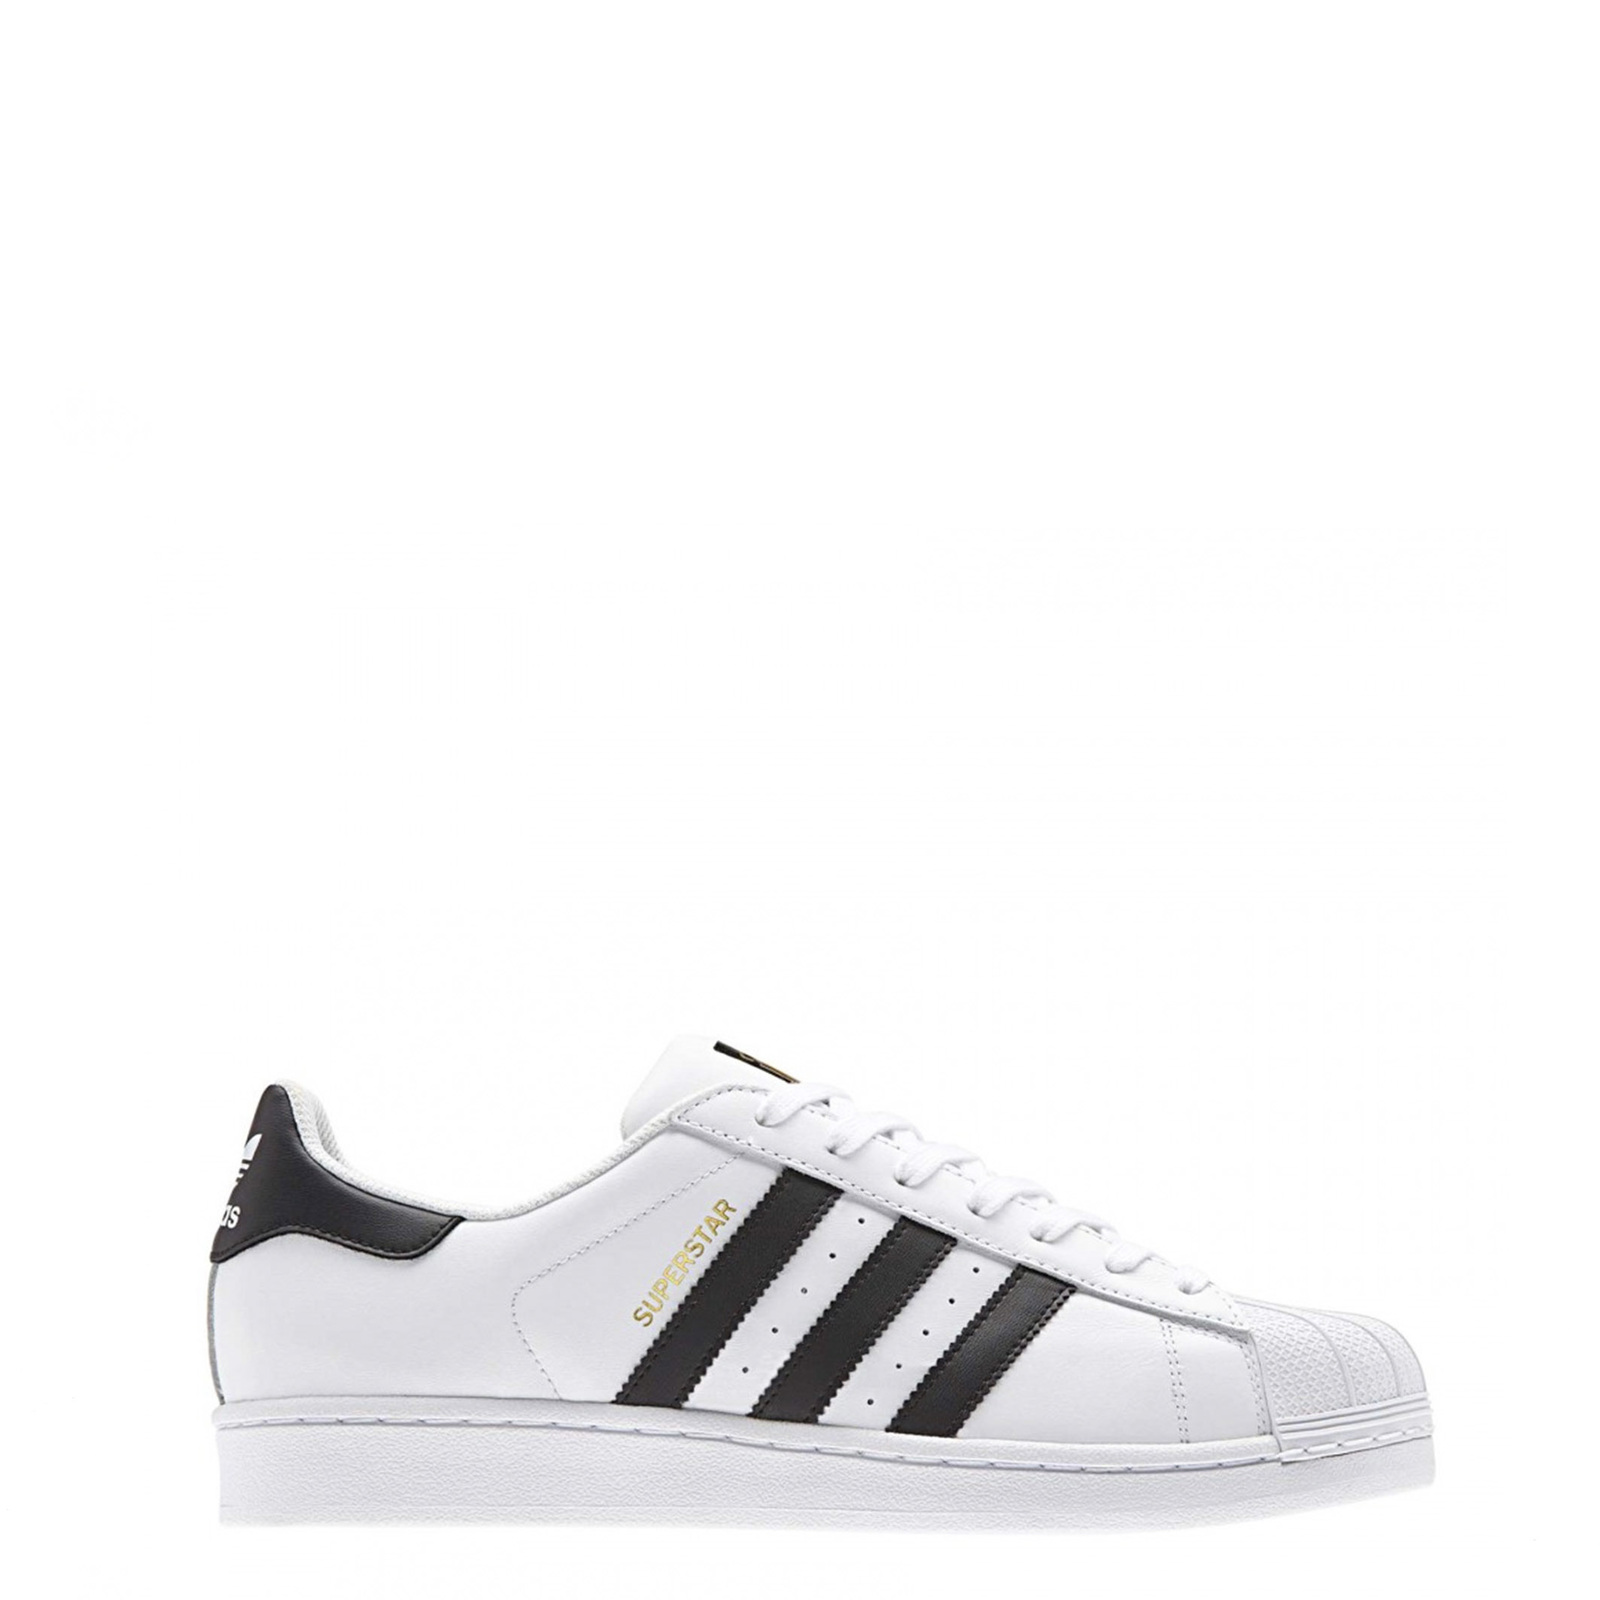 Primary image for 93304 650502 Adidas Super Star Unisexe Blanc 93304